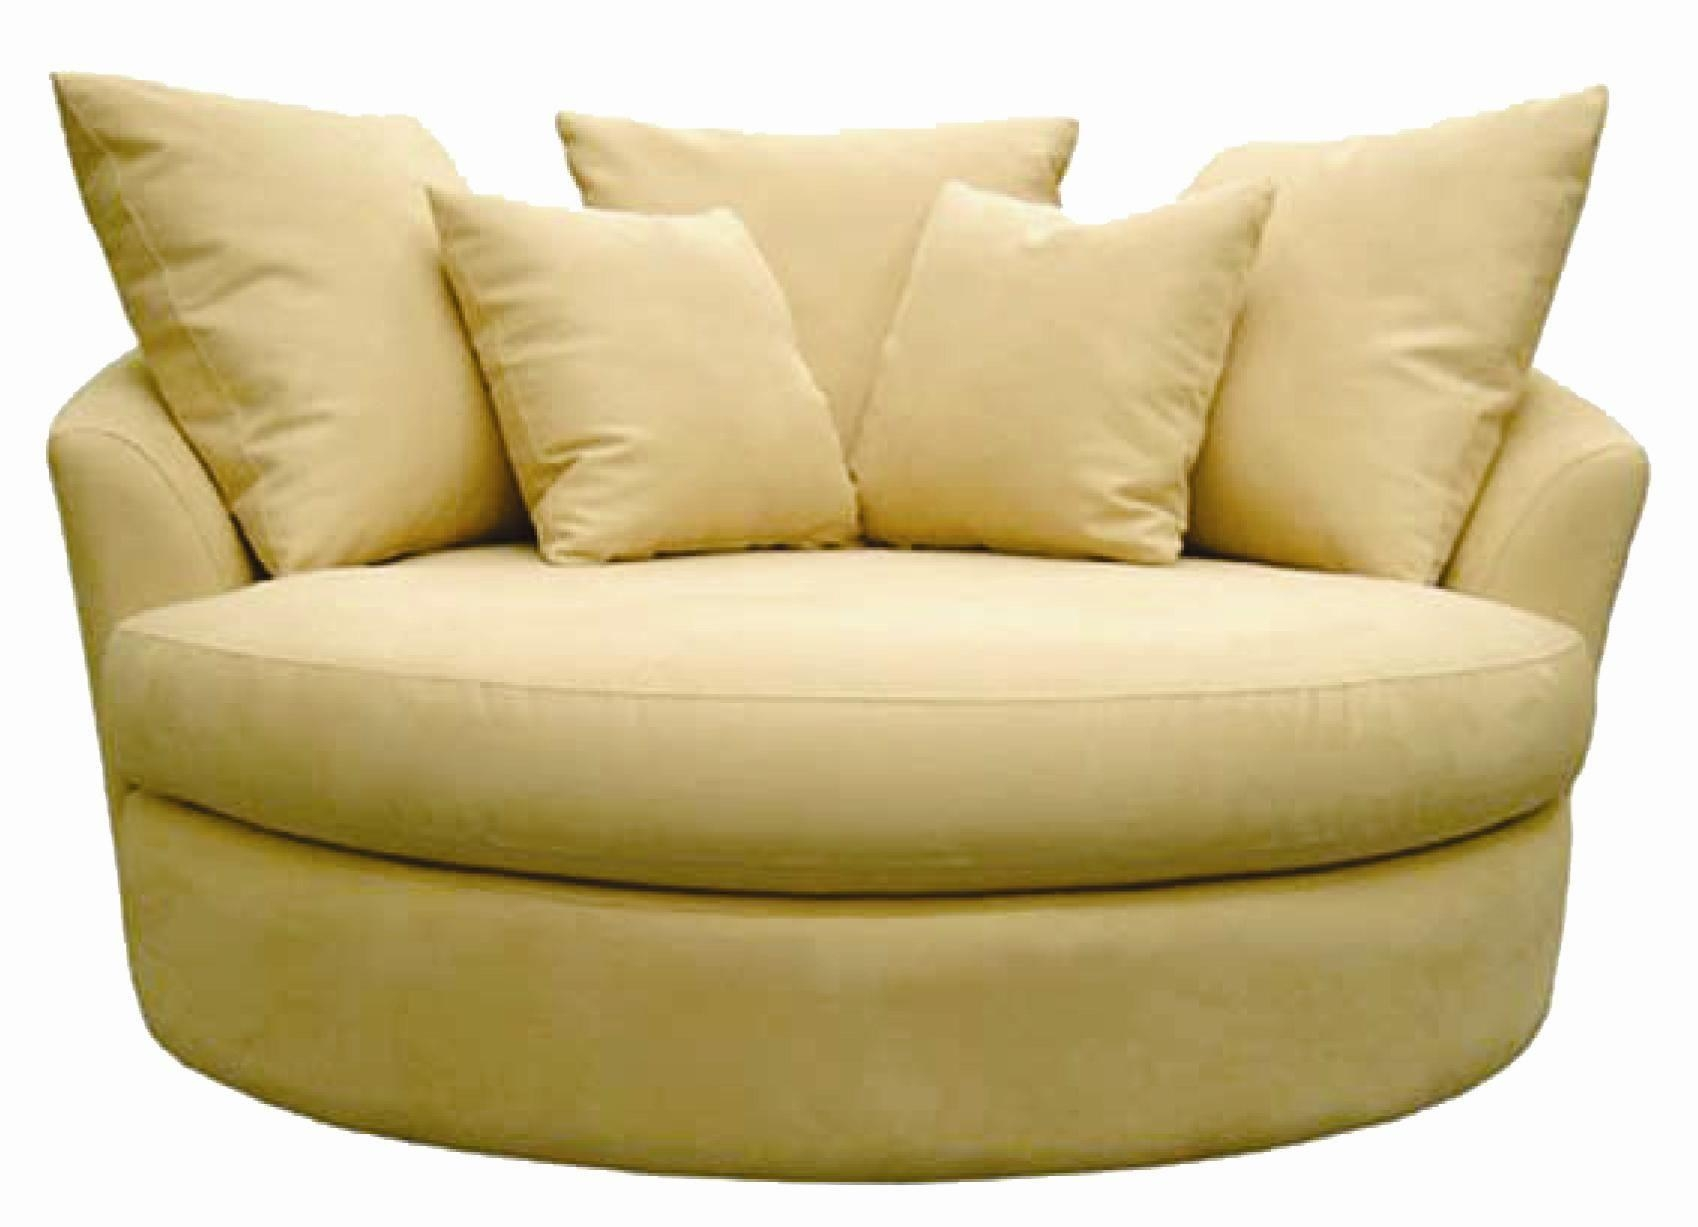 Surprising Round Swivel Sofa Chair Armchairs And Oversized Living Throughout Cuddler Swivel Sofa Chairs (Image 17 of 20)